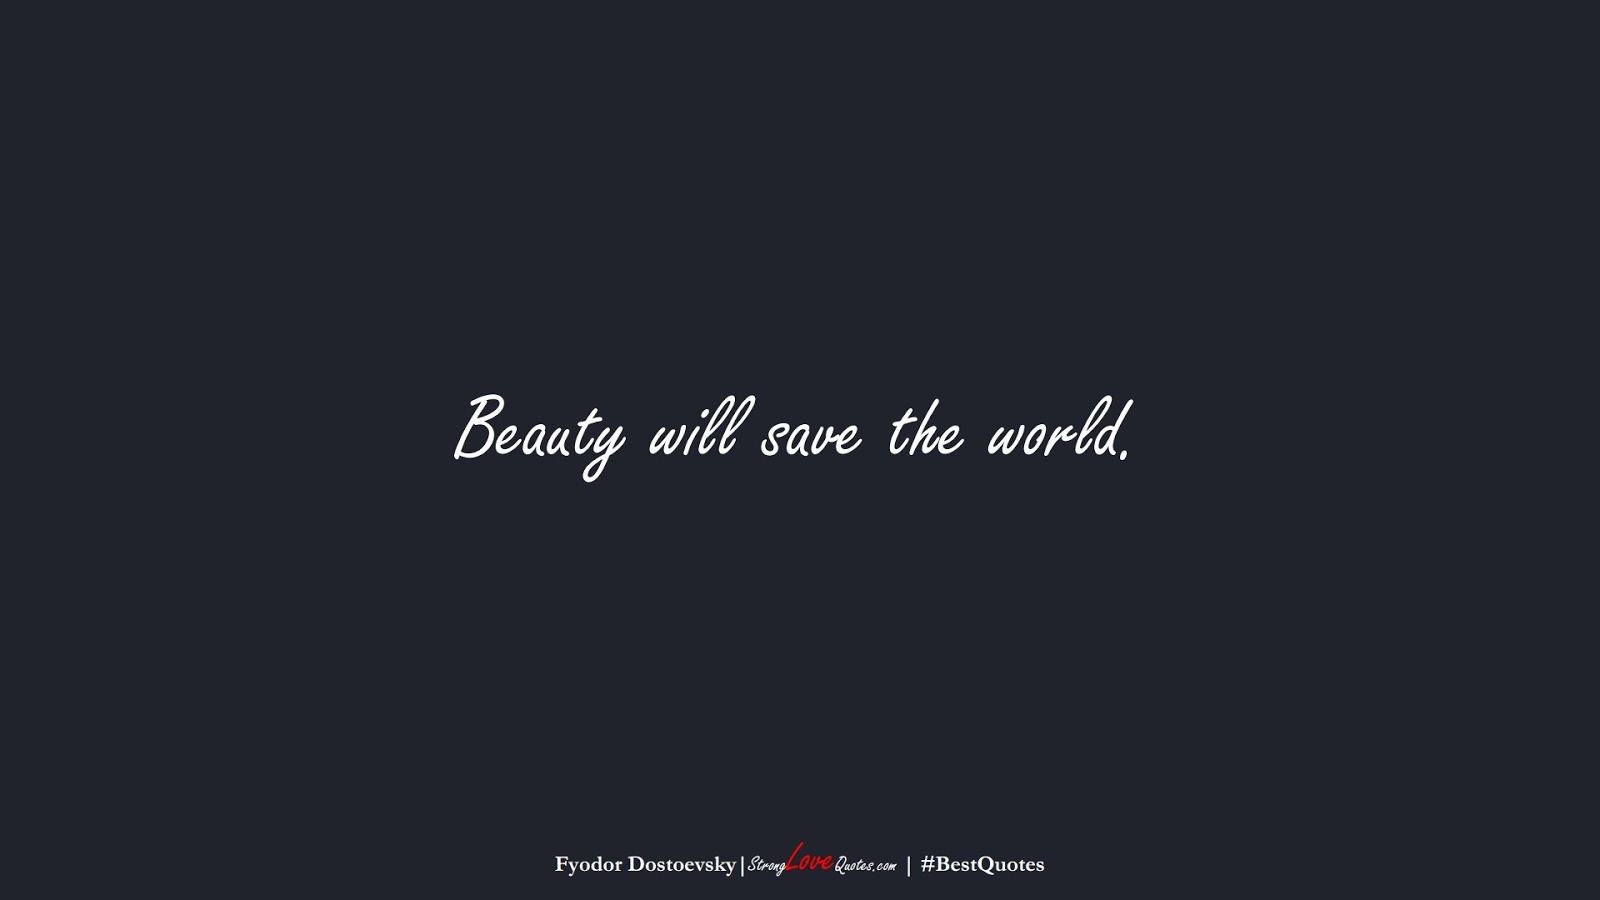 Beauty will save the world. (Fyodor Dostoevsky);  #BestQuotes